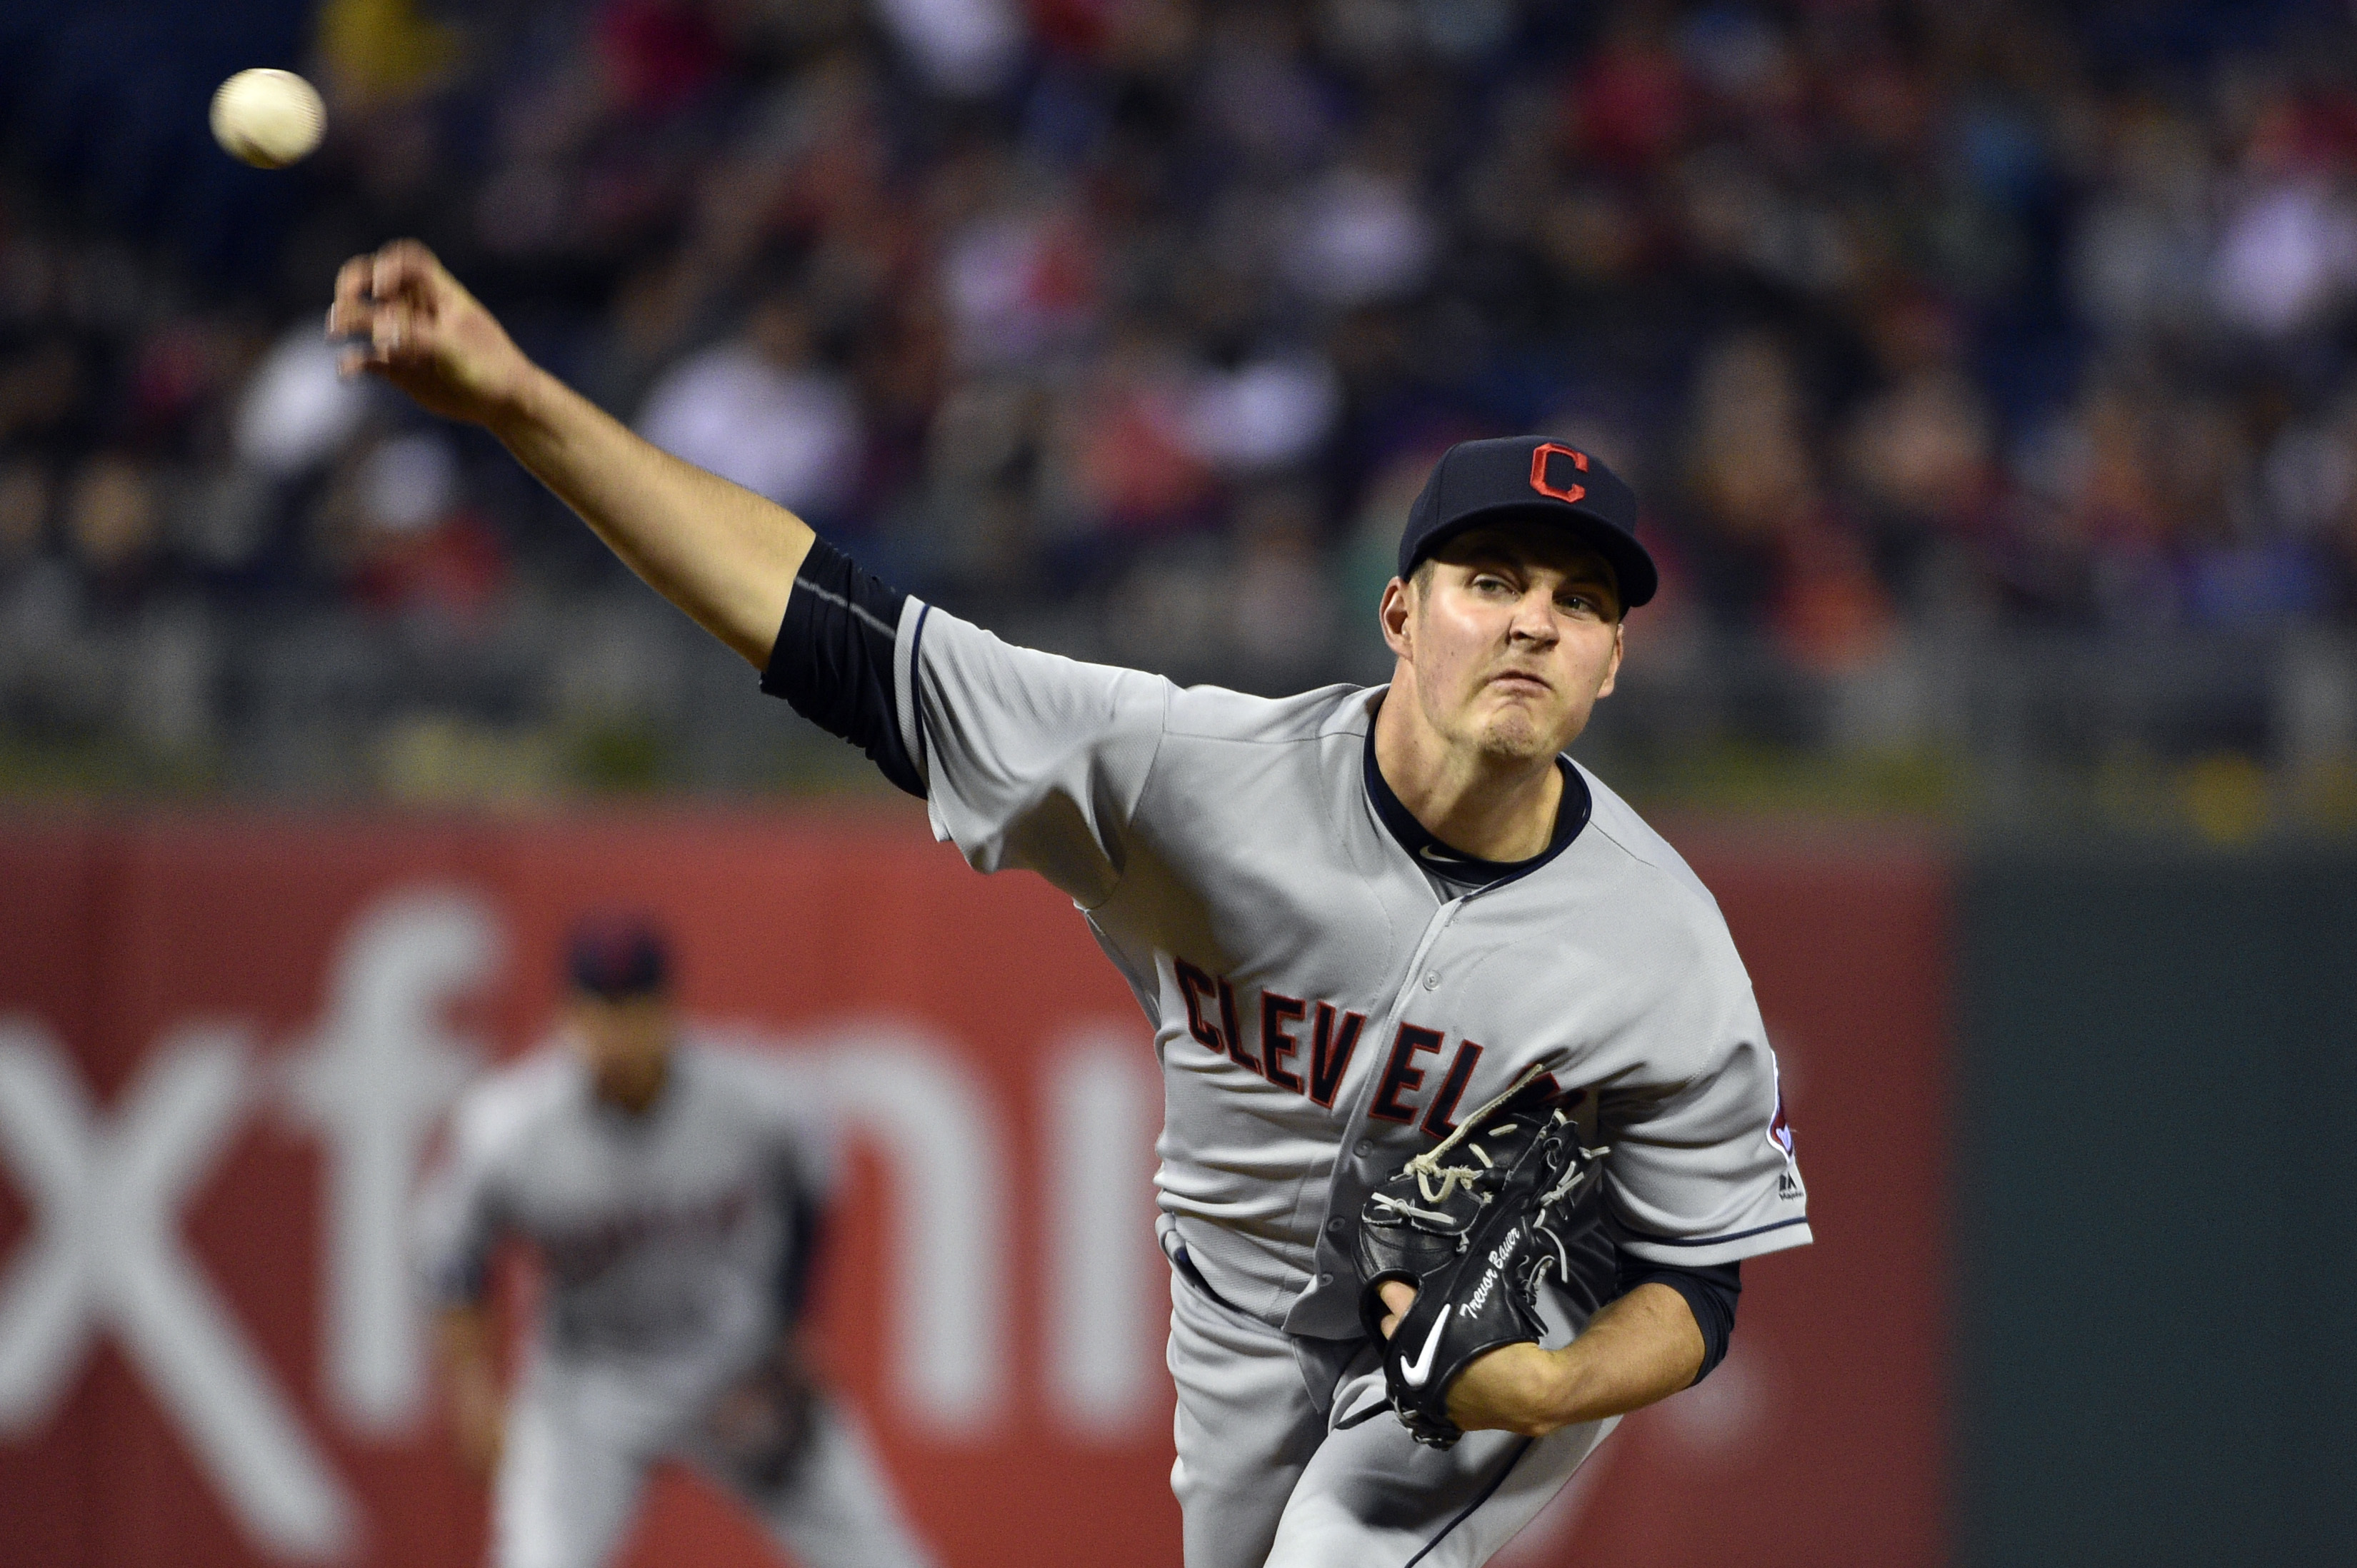 Cleveland Indians' Trevor Bauer throws during the third inning of a baseball game against the Philadelphia Phillies, Saturday, April 30, 2016, in Philadelphia. (AP Photo/Derik Hamilton)